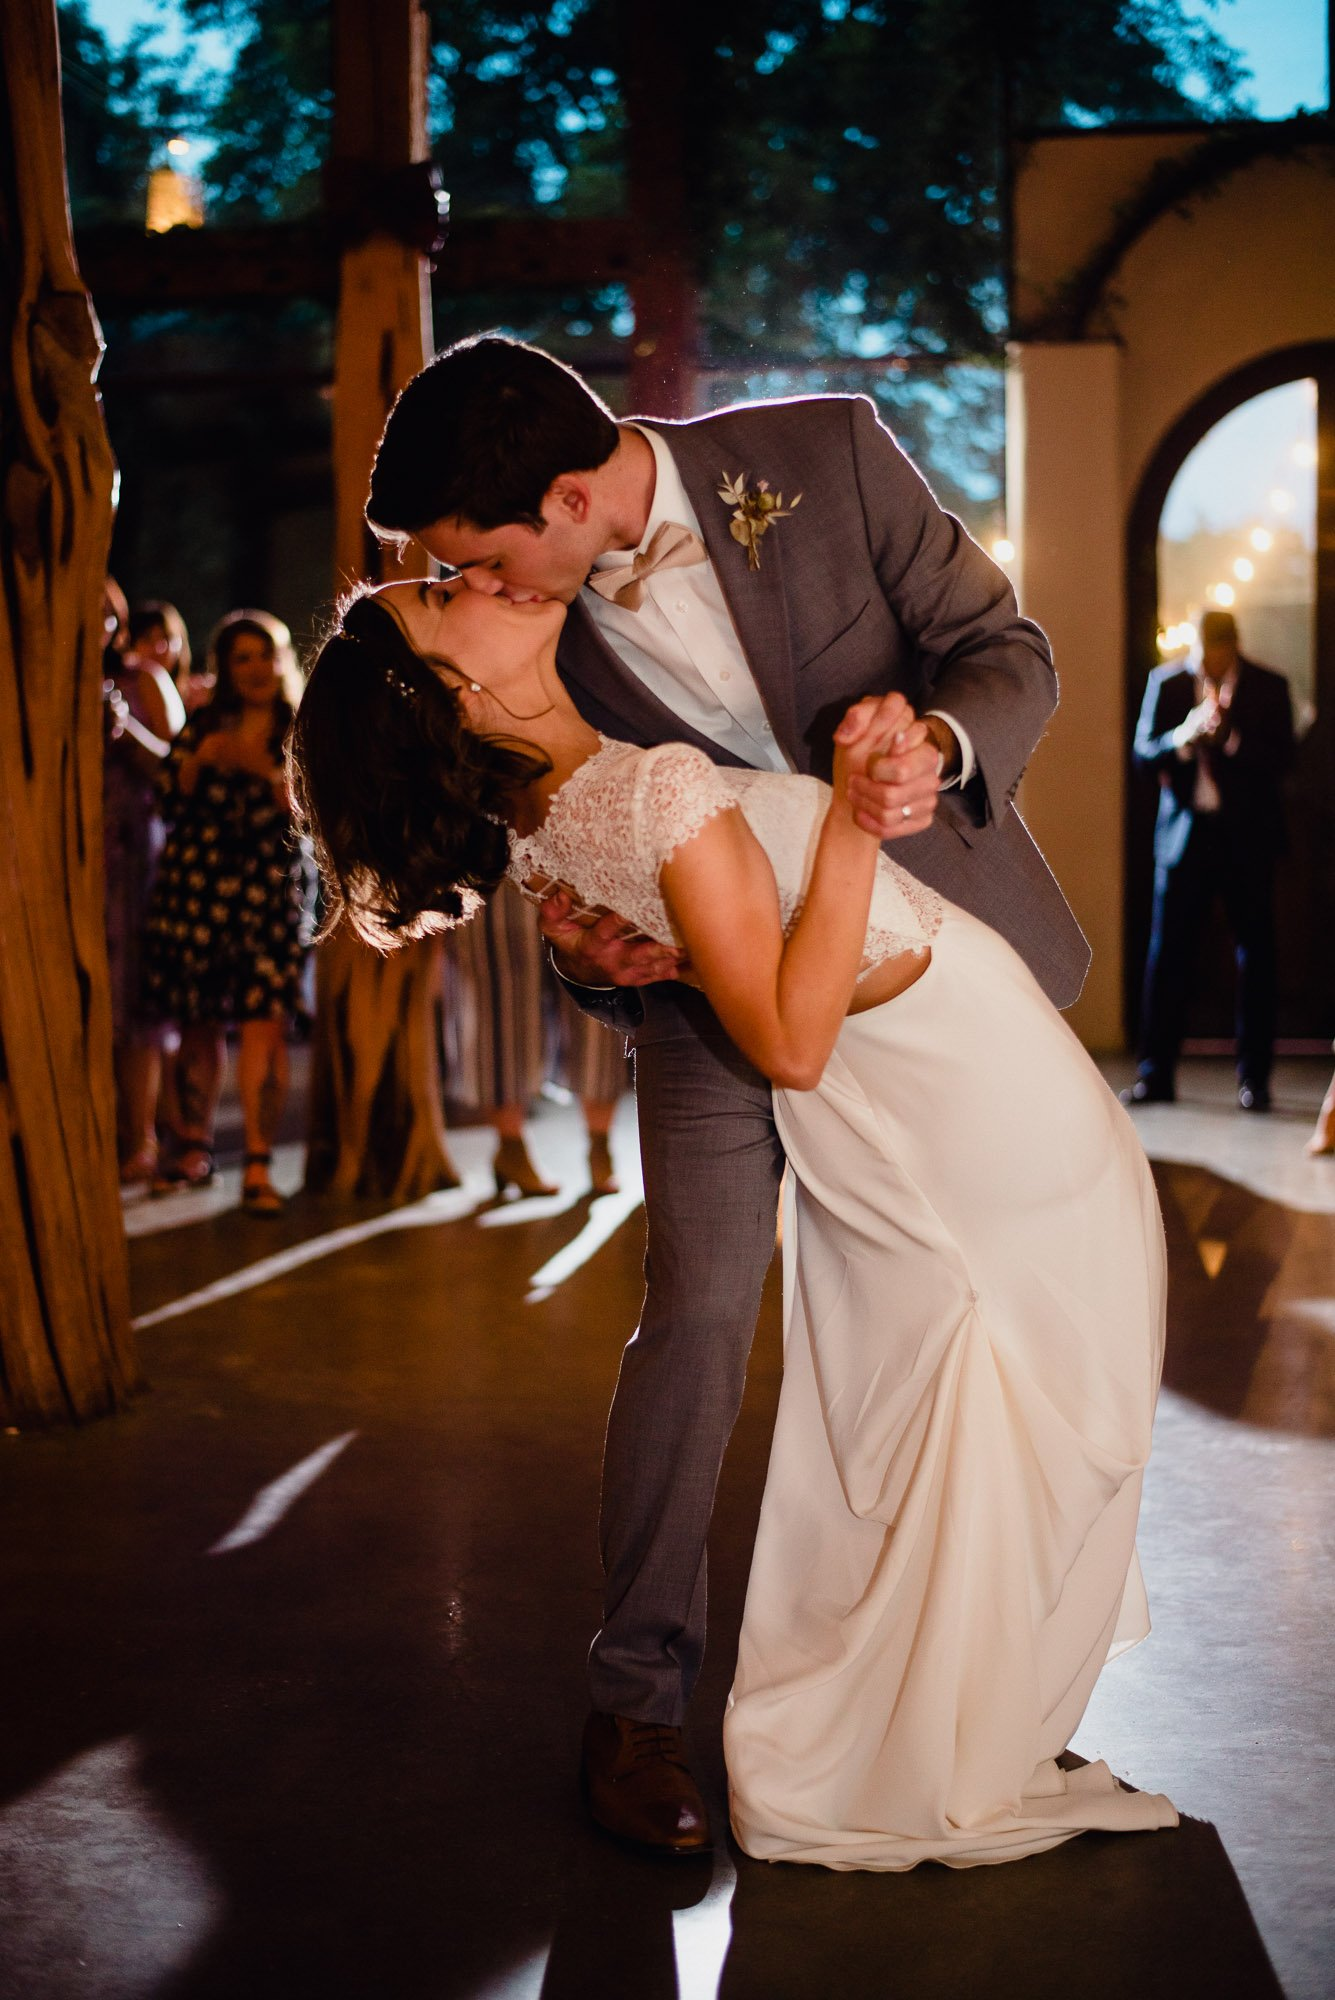 after the first dance, comes a first dip kiss.